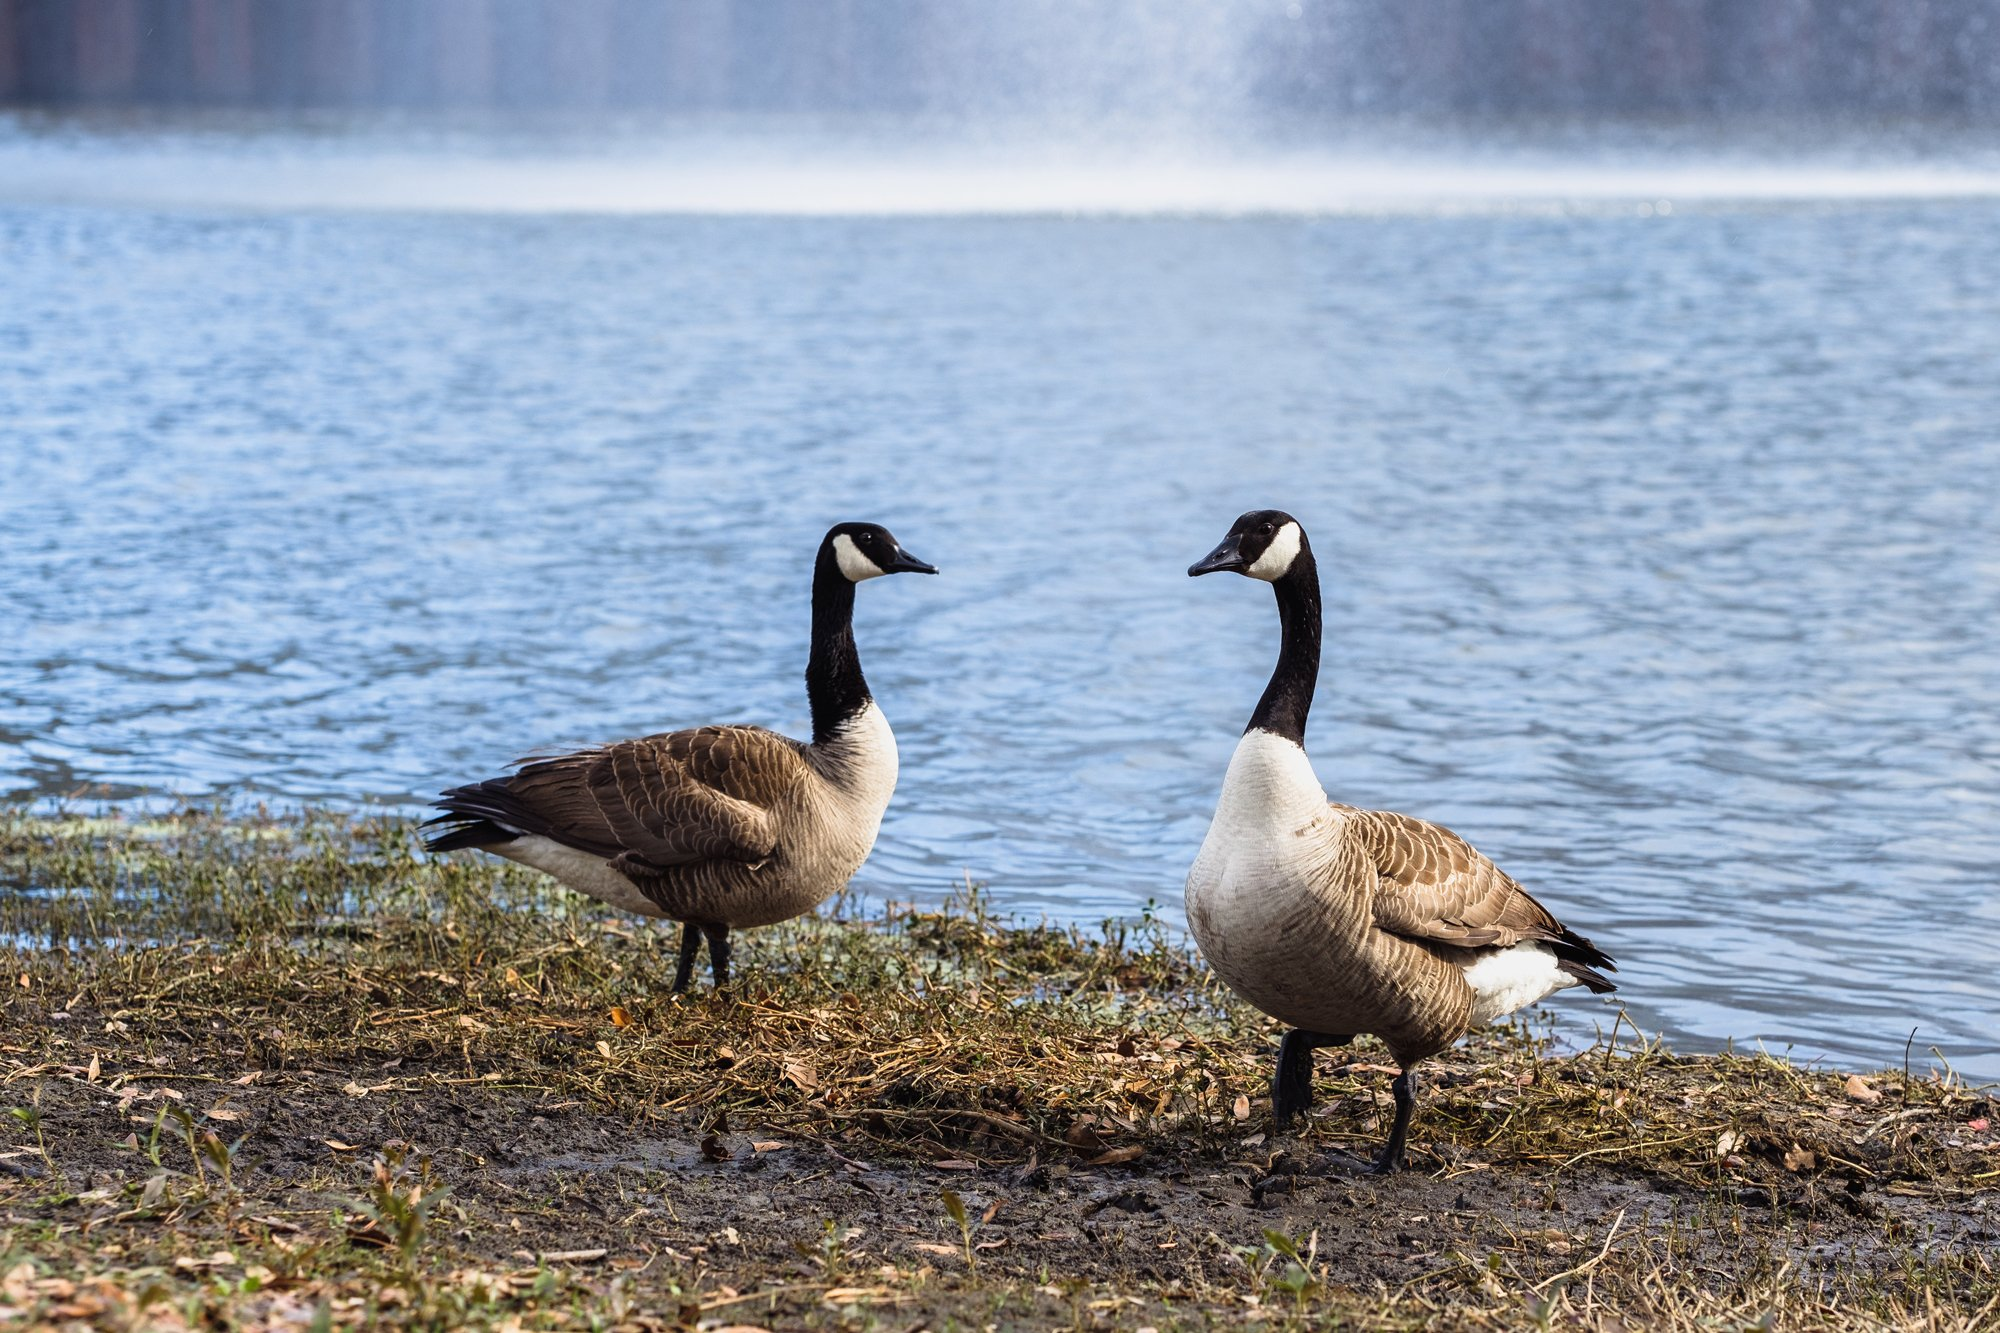 Canada Geese May Have Overstayed Their Welcome Tallahassee Magazine